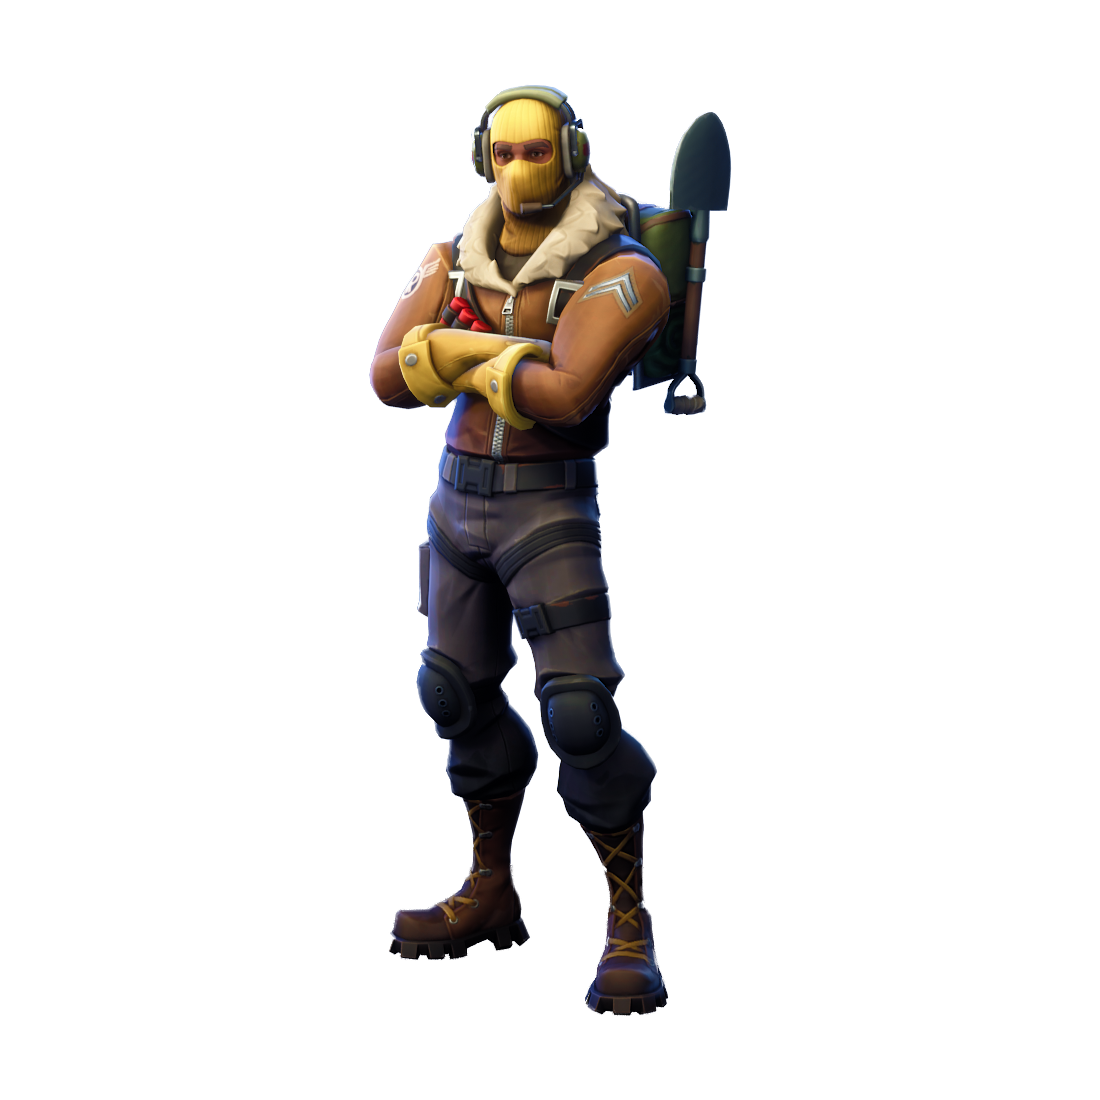 Fortnite raptor png. Image purepng free transparent